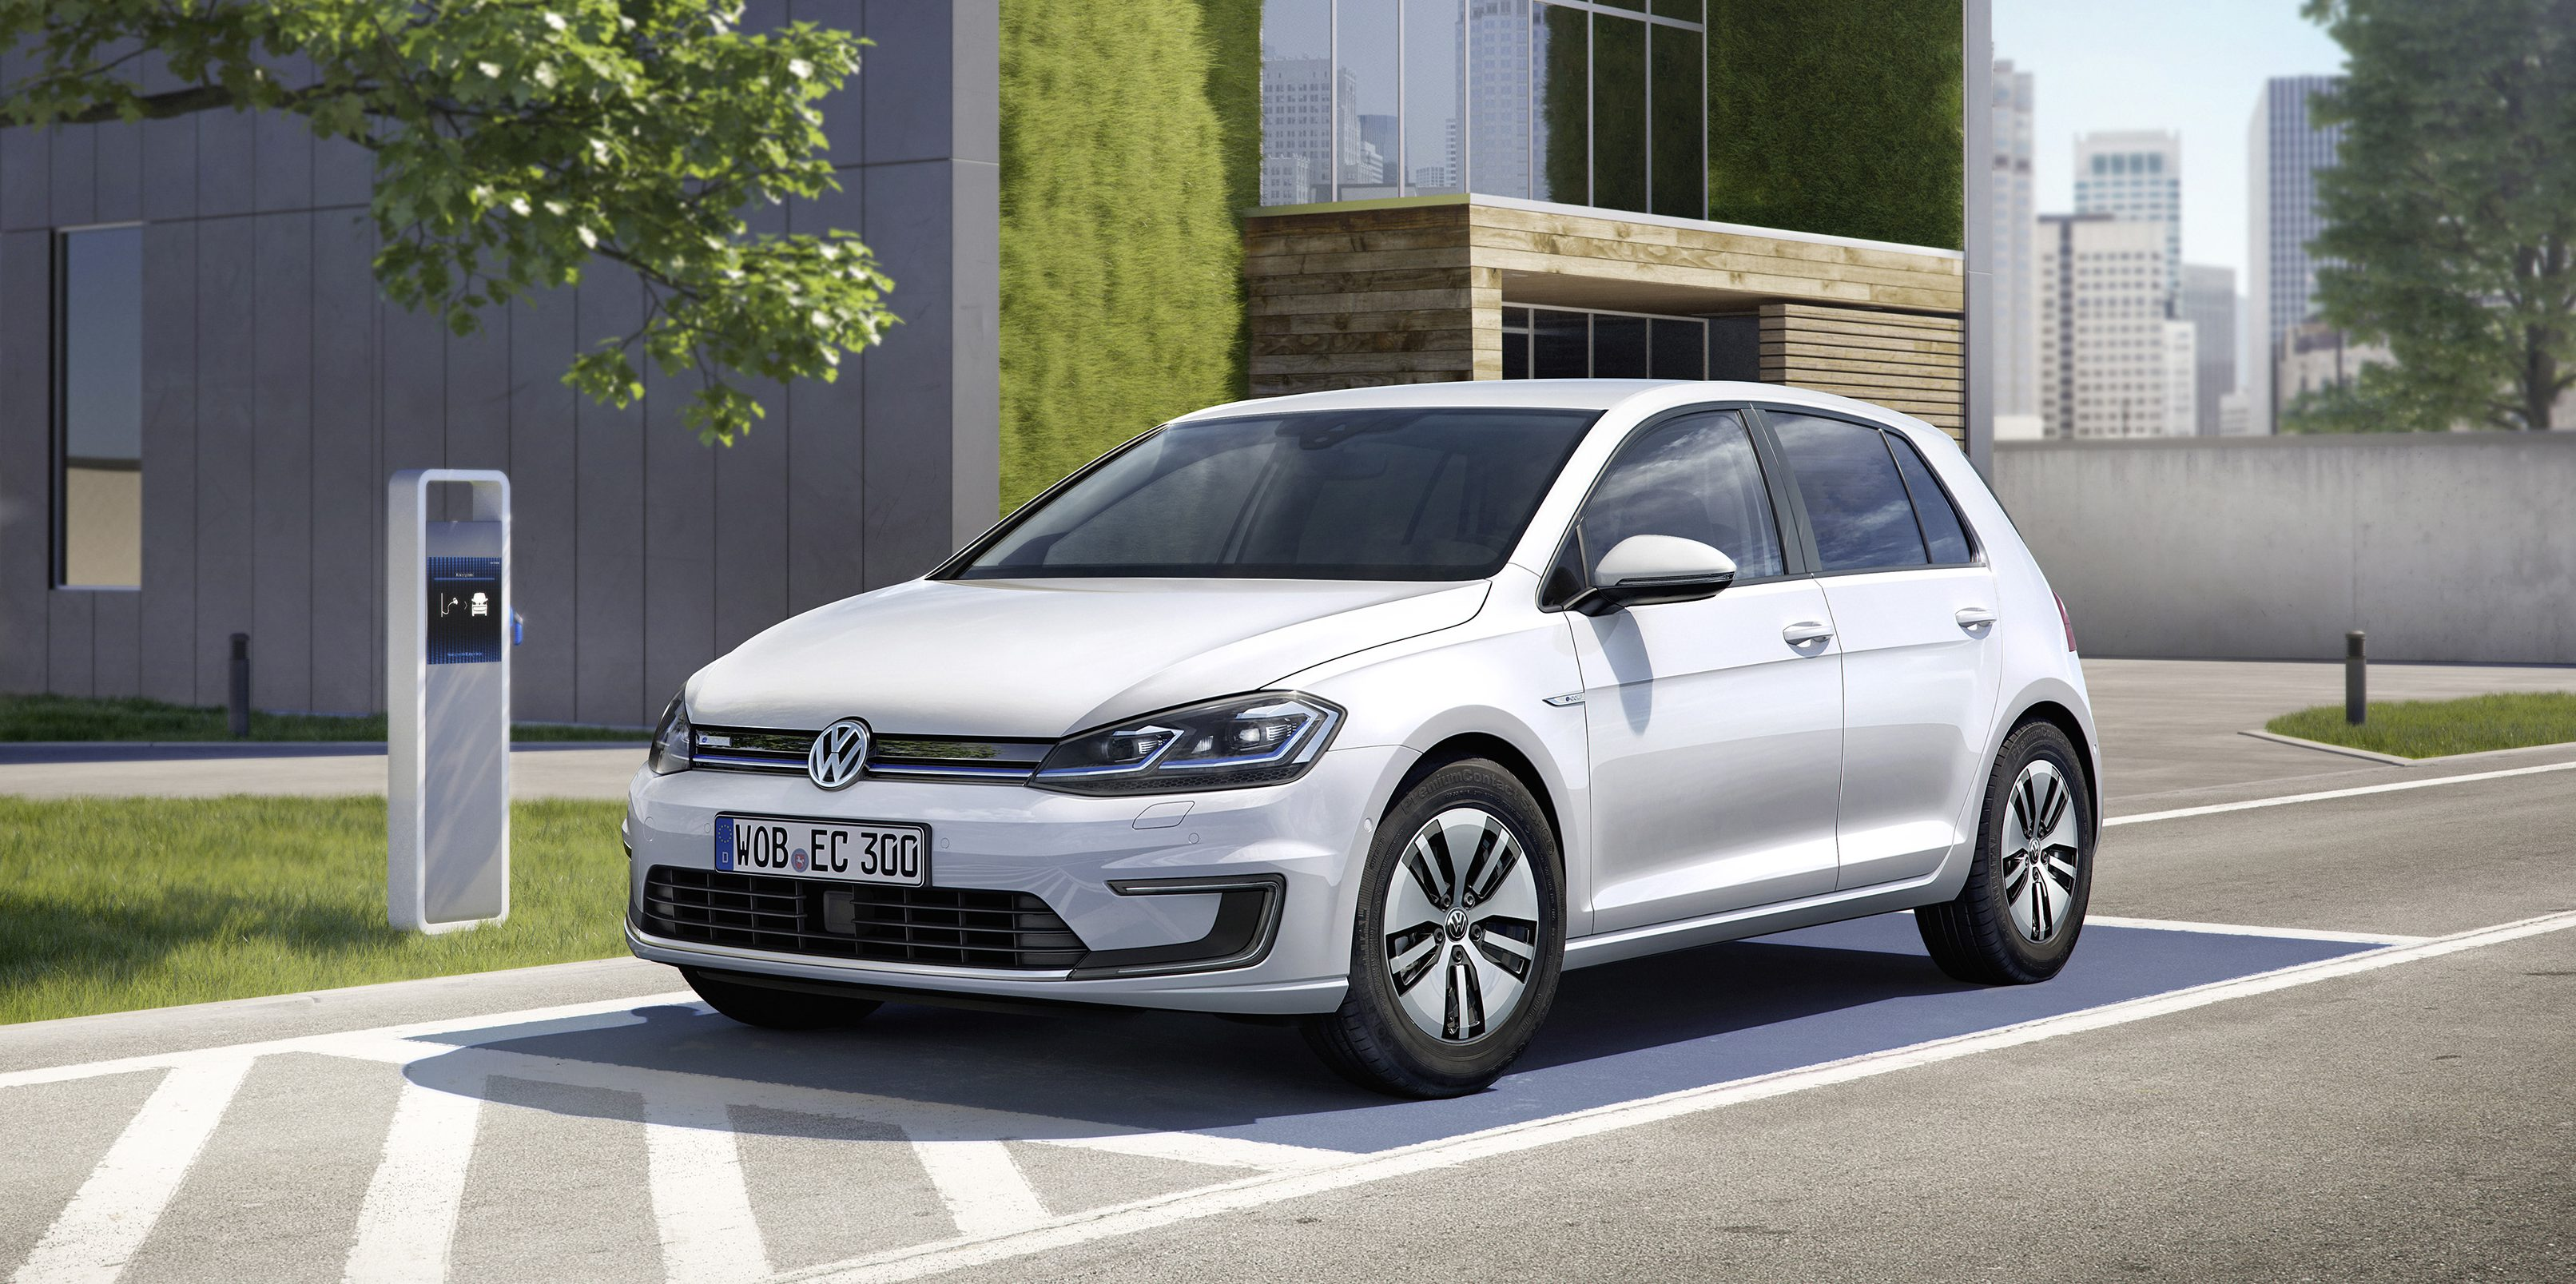 Norway is near electric car sale record again as VW delivers almost 1,000 e-Golfs